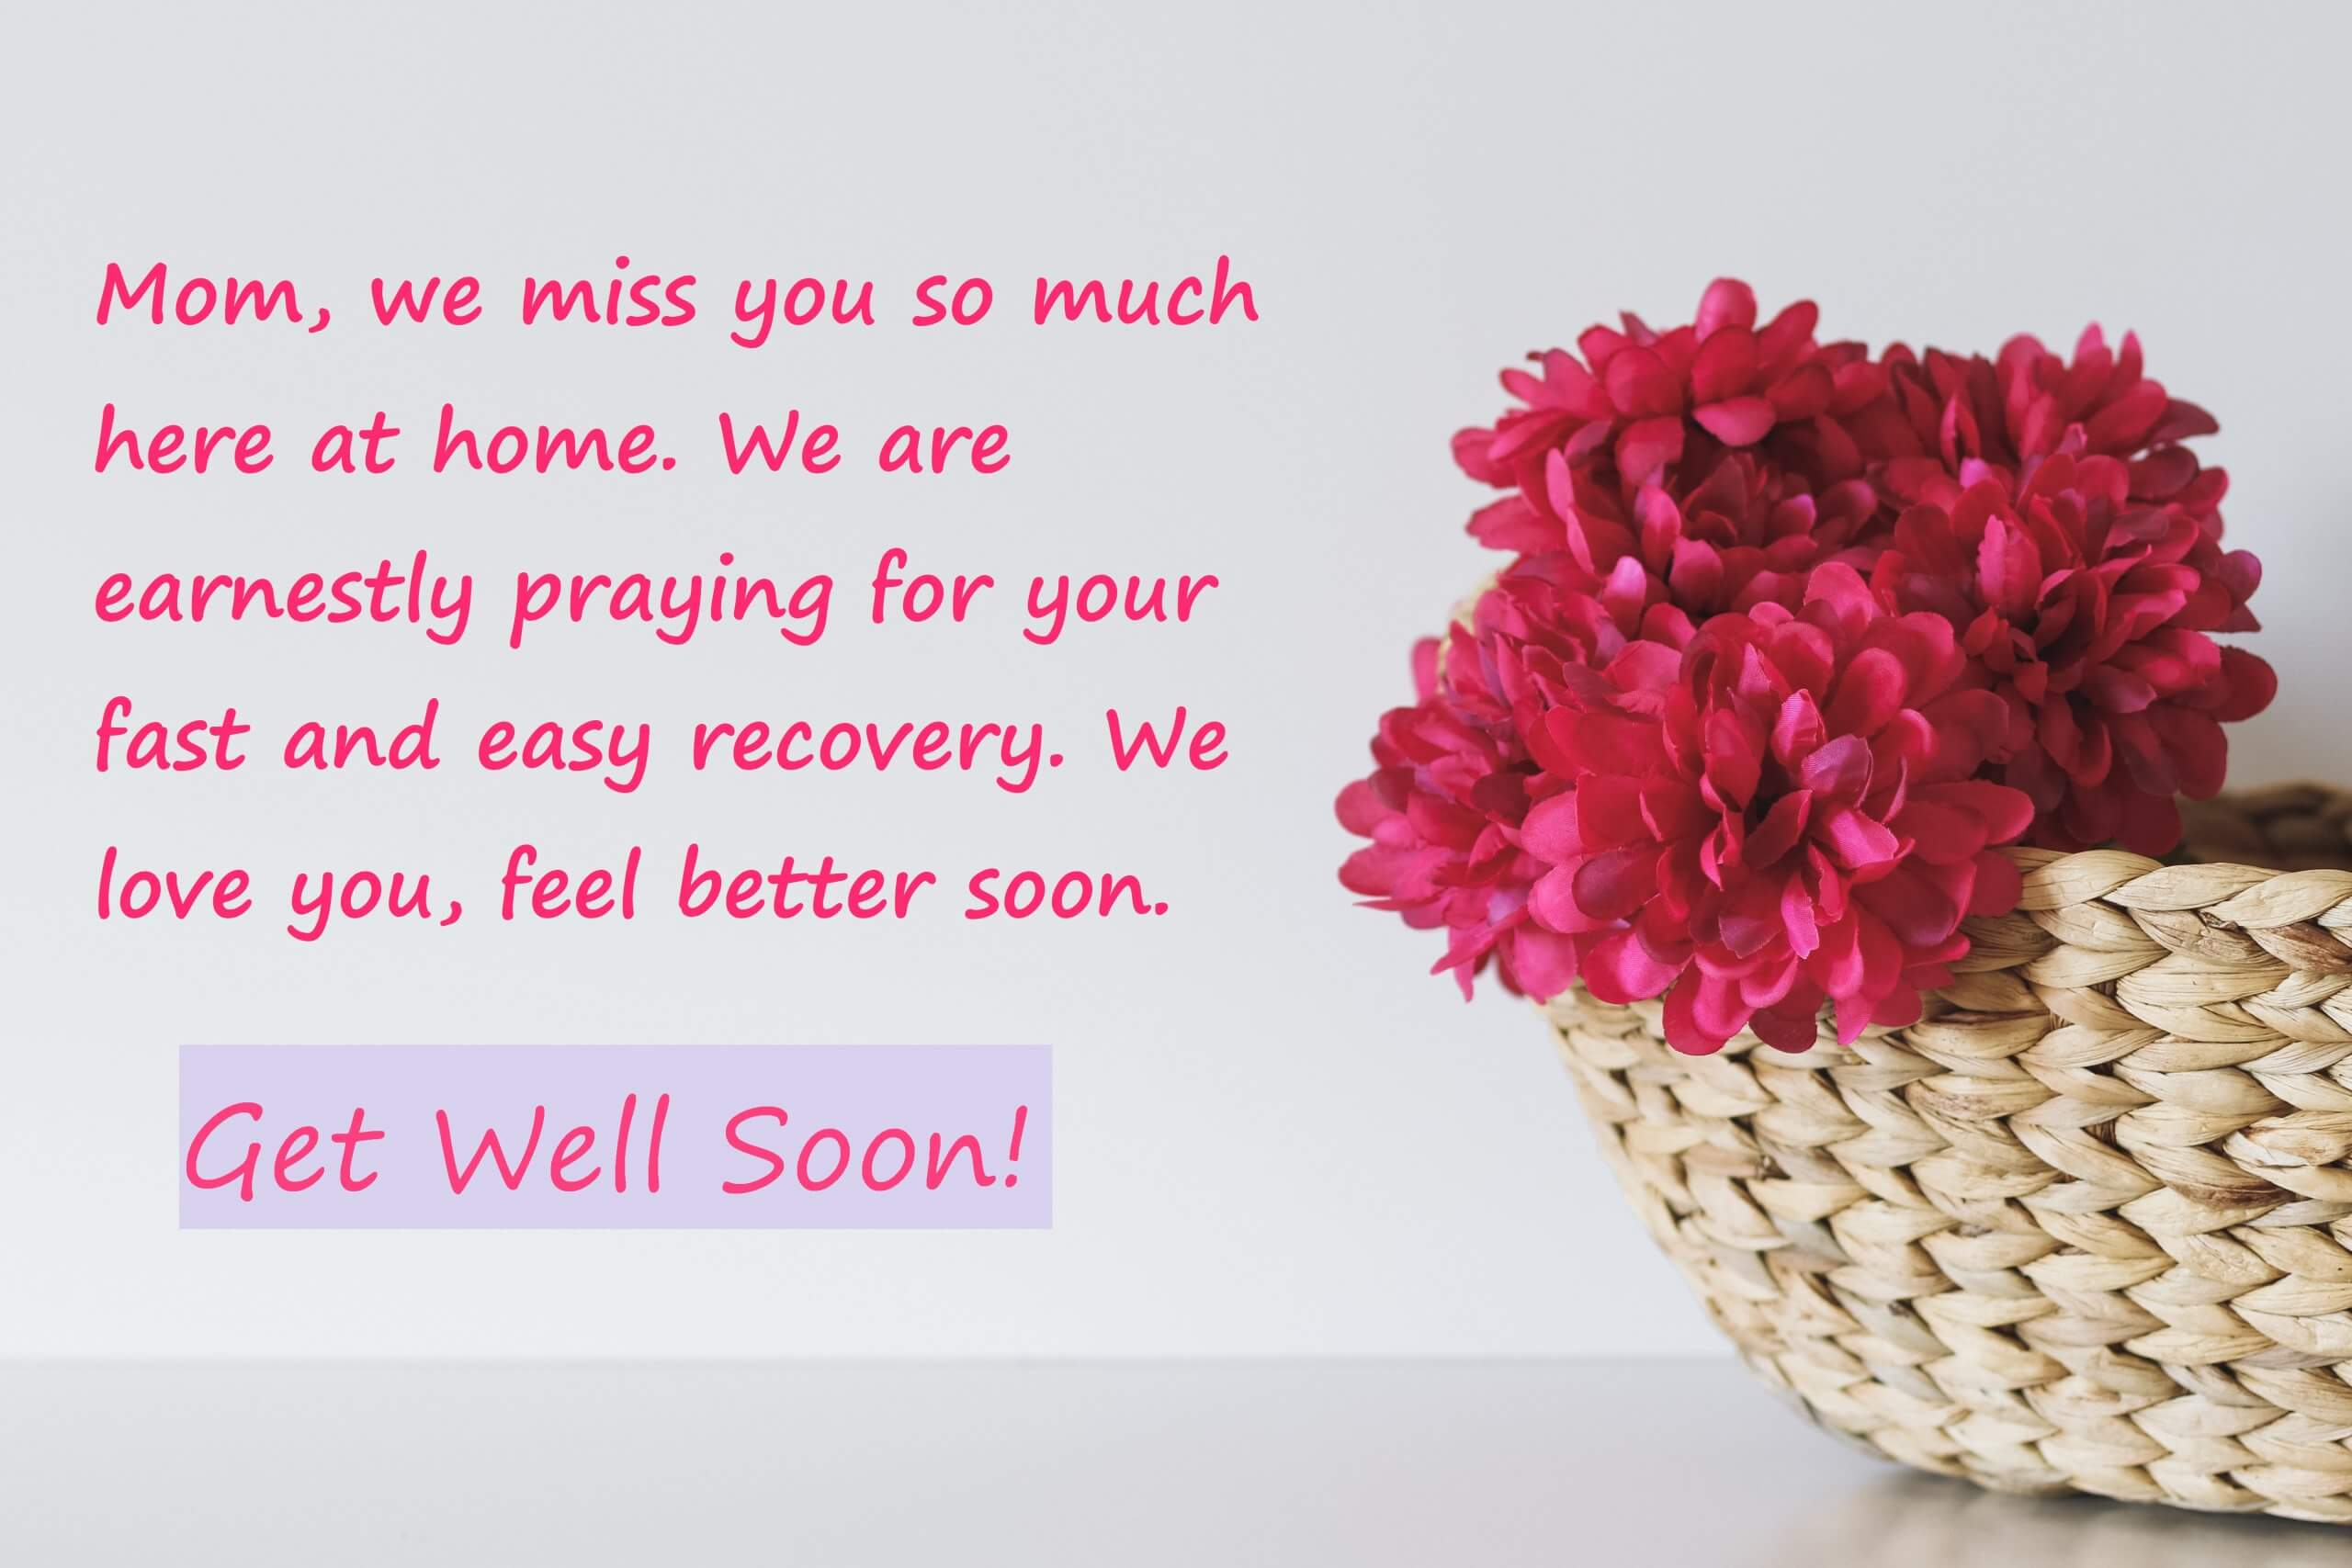 Get Well Soon Wishes, Quotes, Messages For Mother